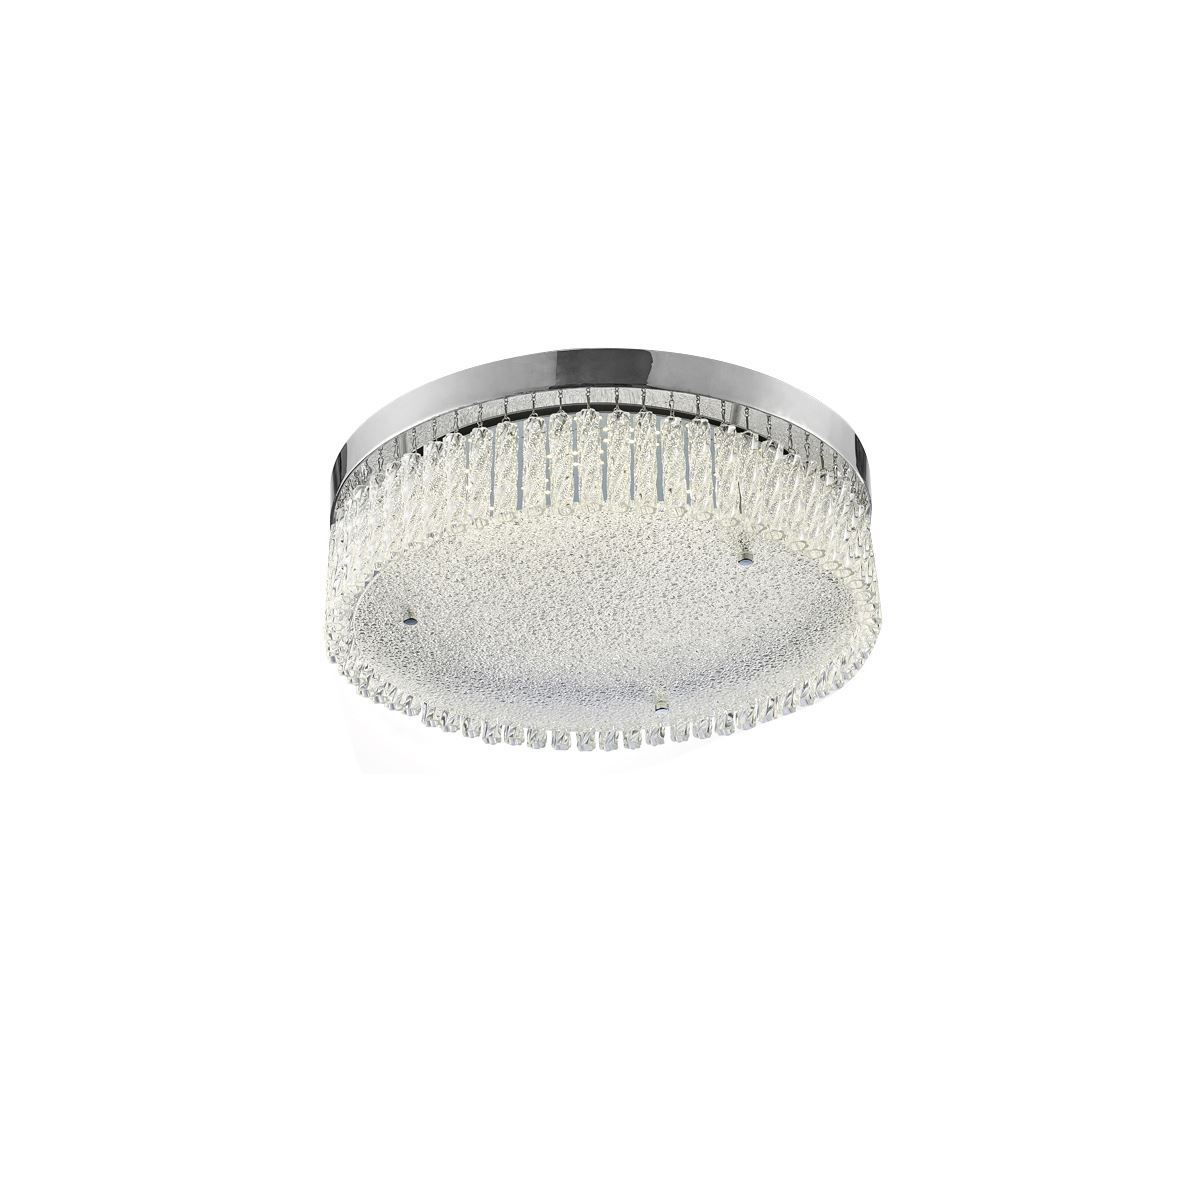 Diyas Aiden Large Round Ceiling 21W 1900lm LED 4200K Polished Chrome/Crystal